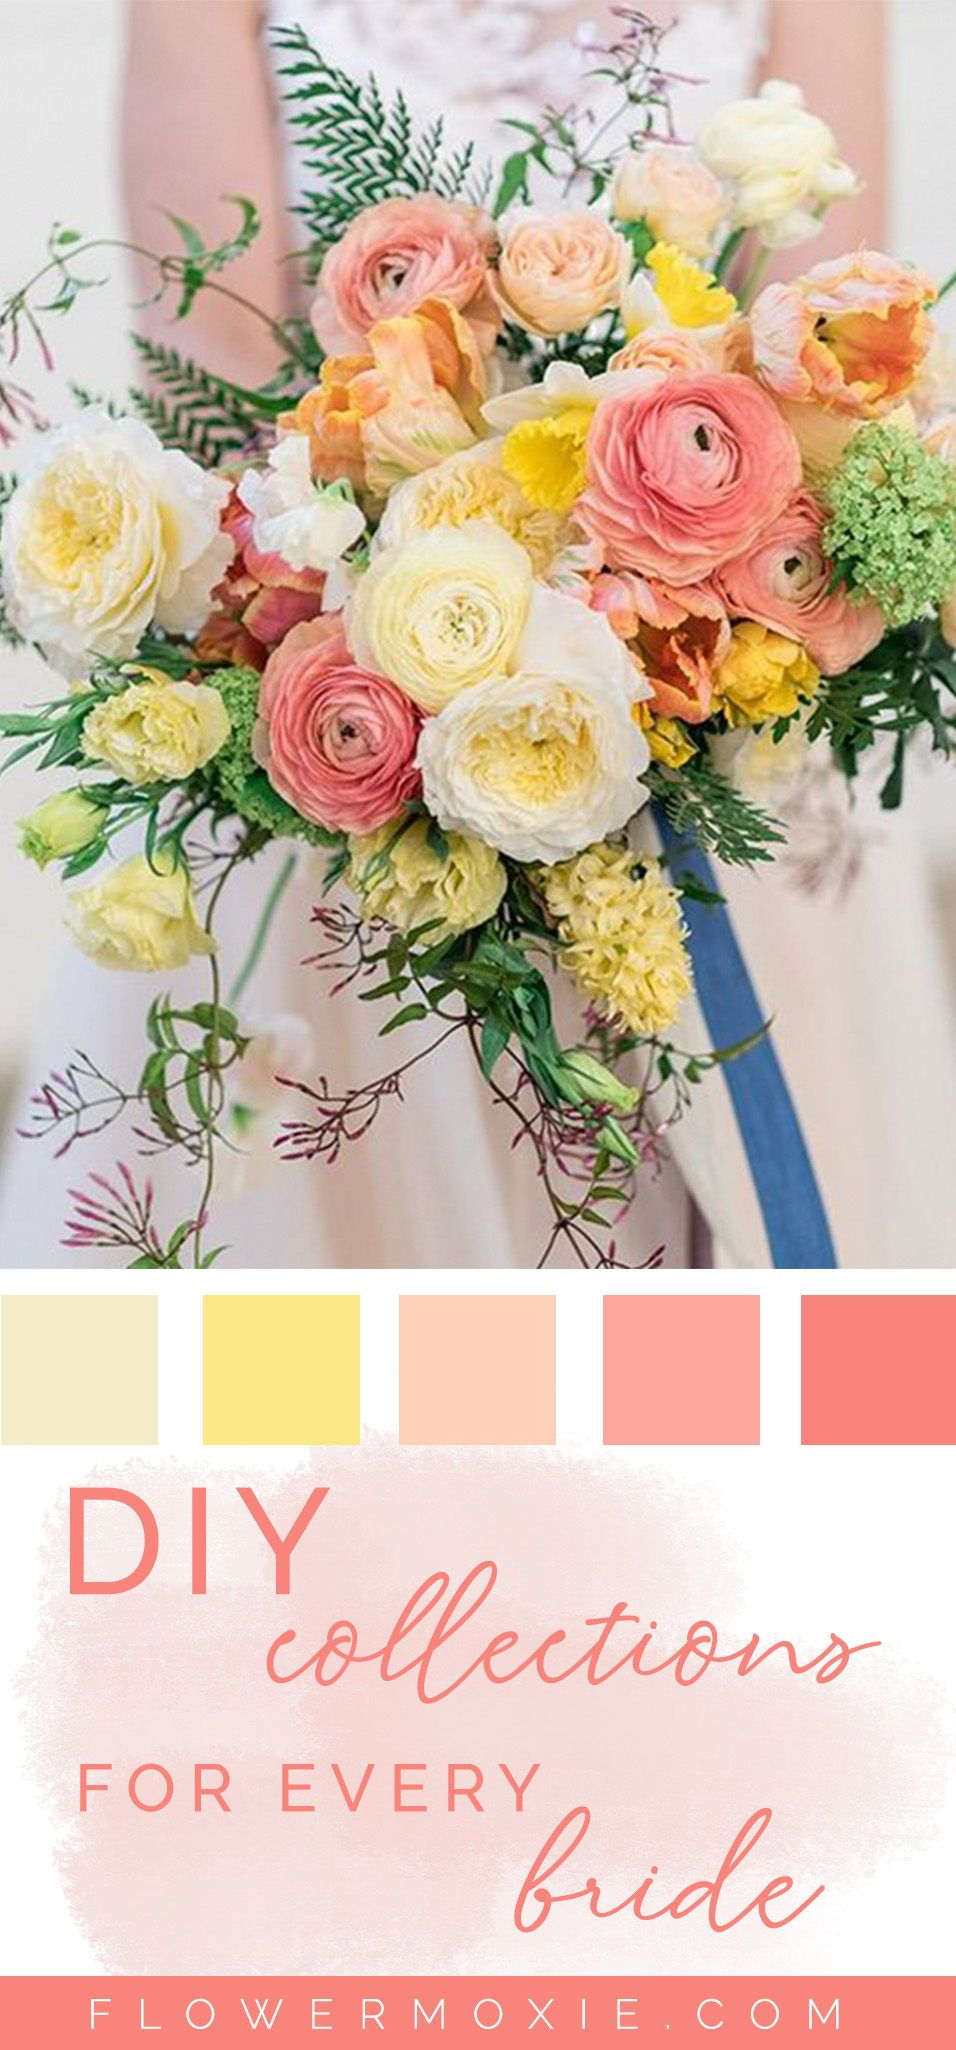 Get Inspired By Our Wedding Flower Packages Mix Match Flowers To Achieve The Look You Online Wedding Flowers Bulk Wedding Flowers Wholesale Flowers Wedding